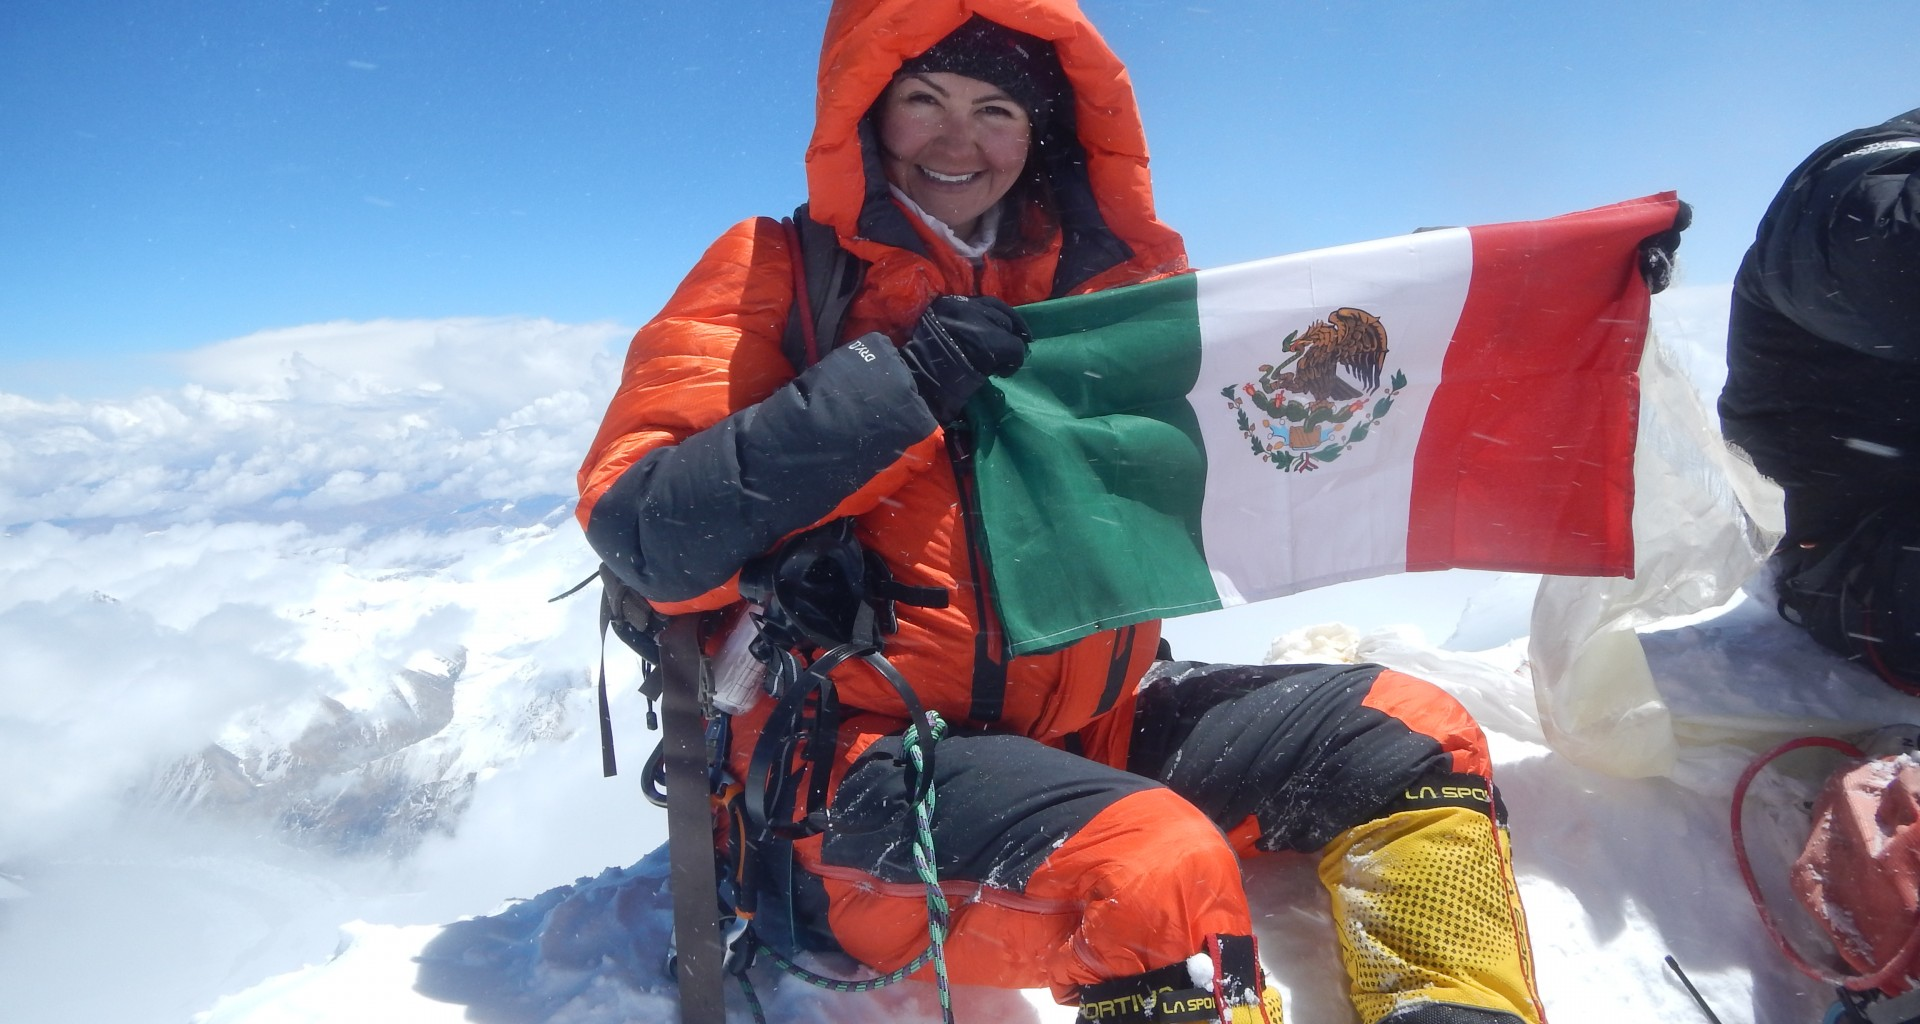 Escaladora EXATEC Monte Everest